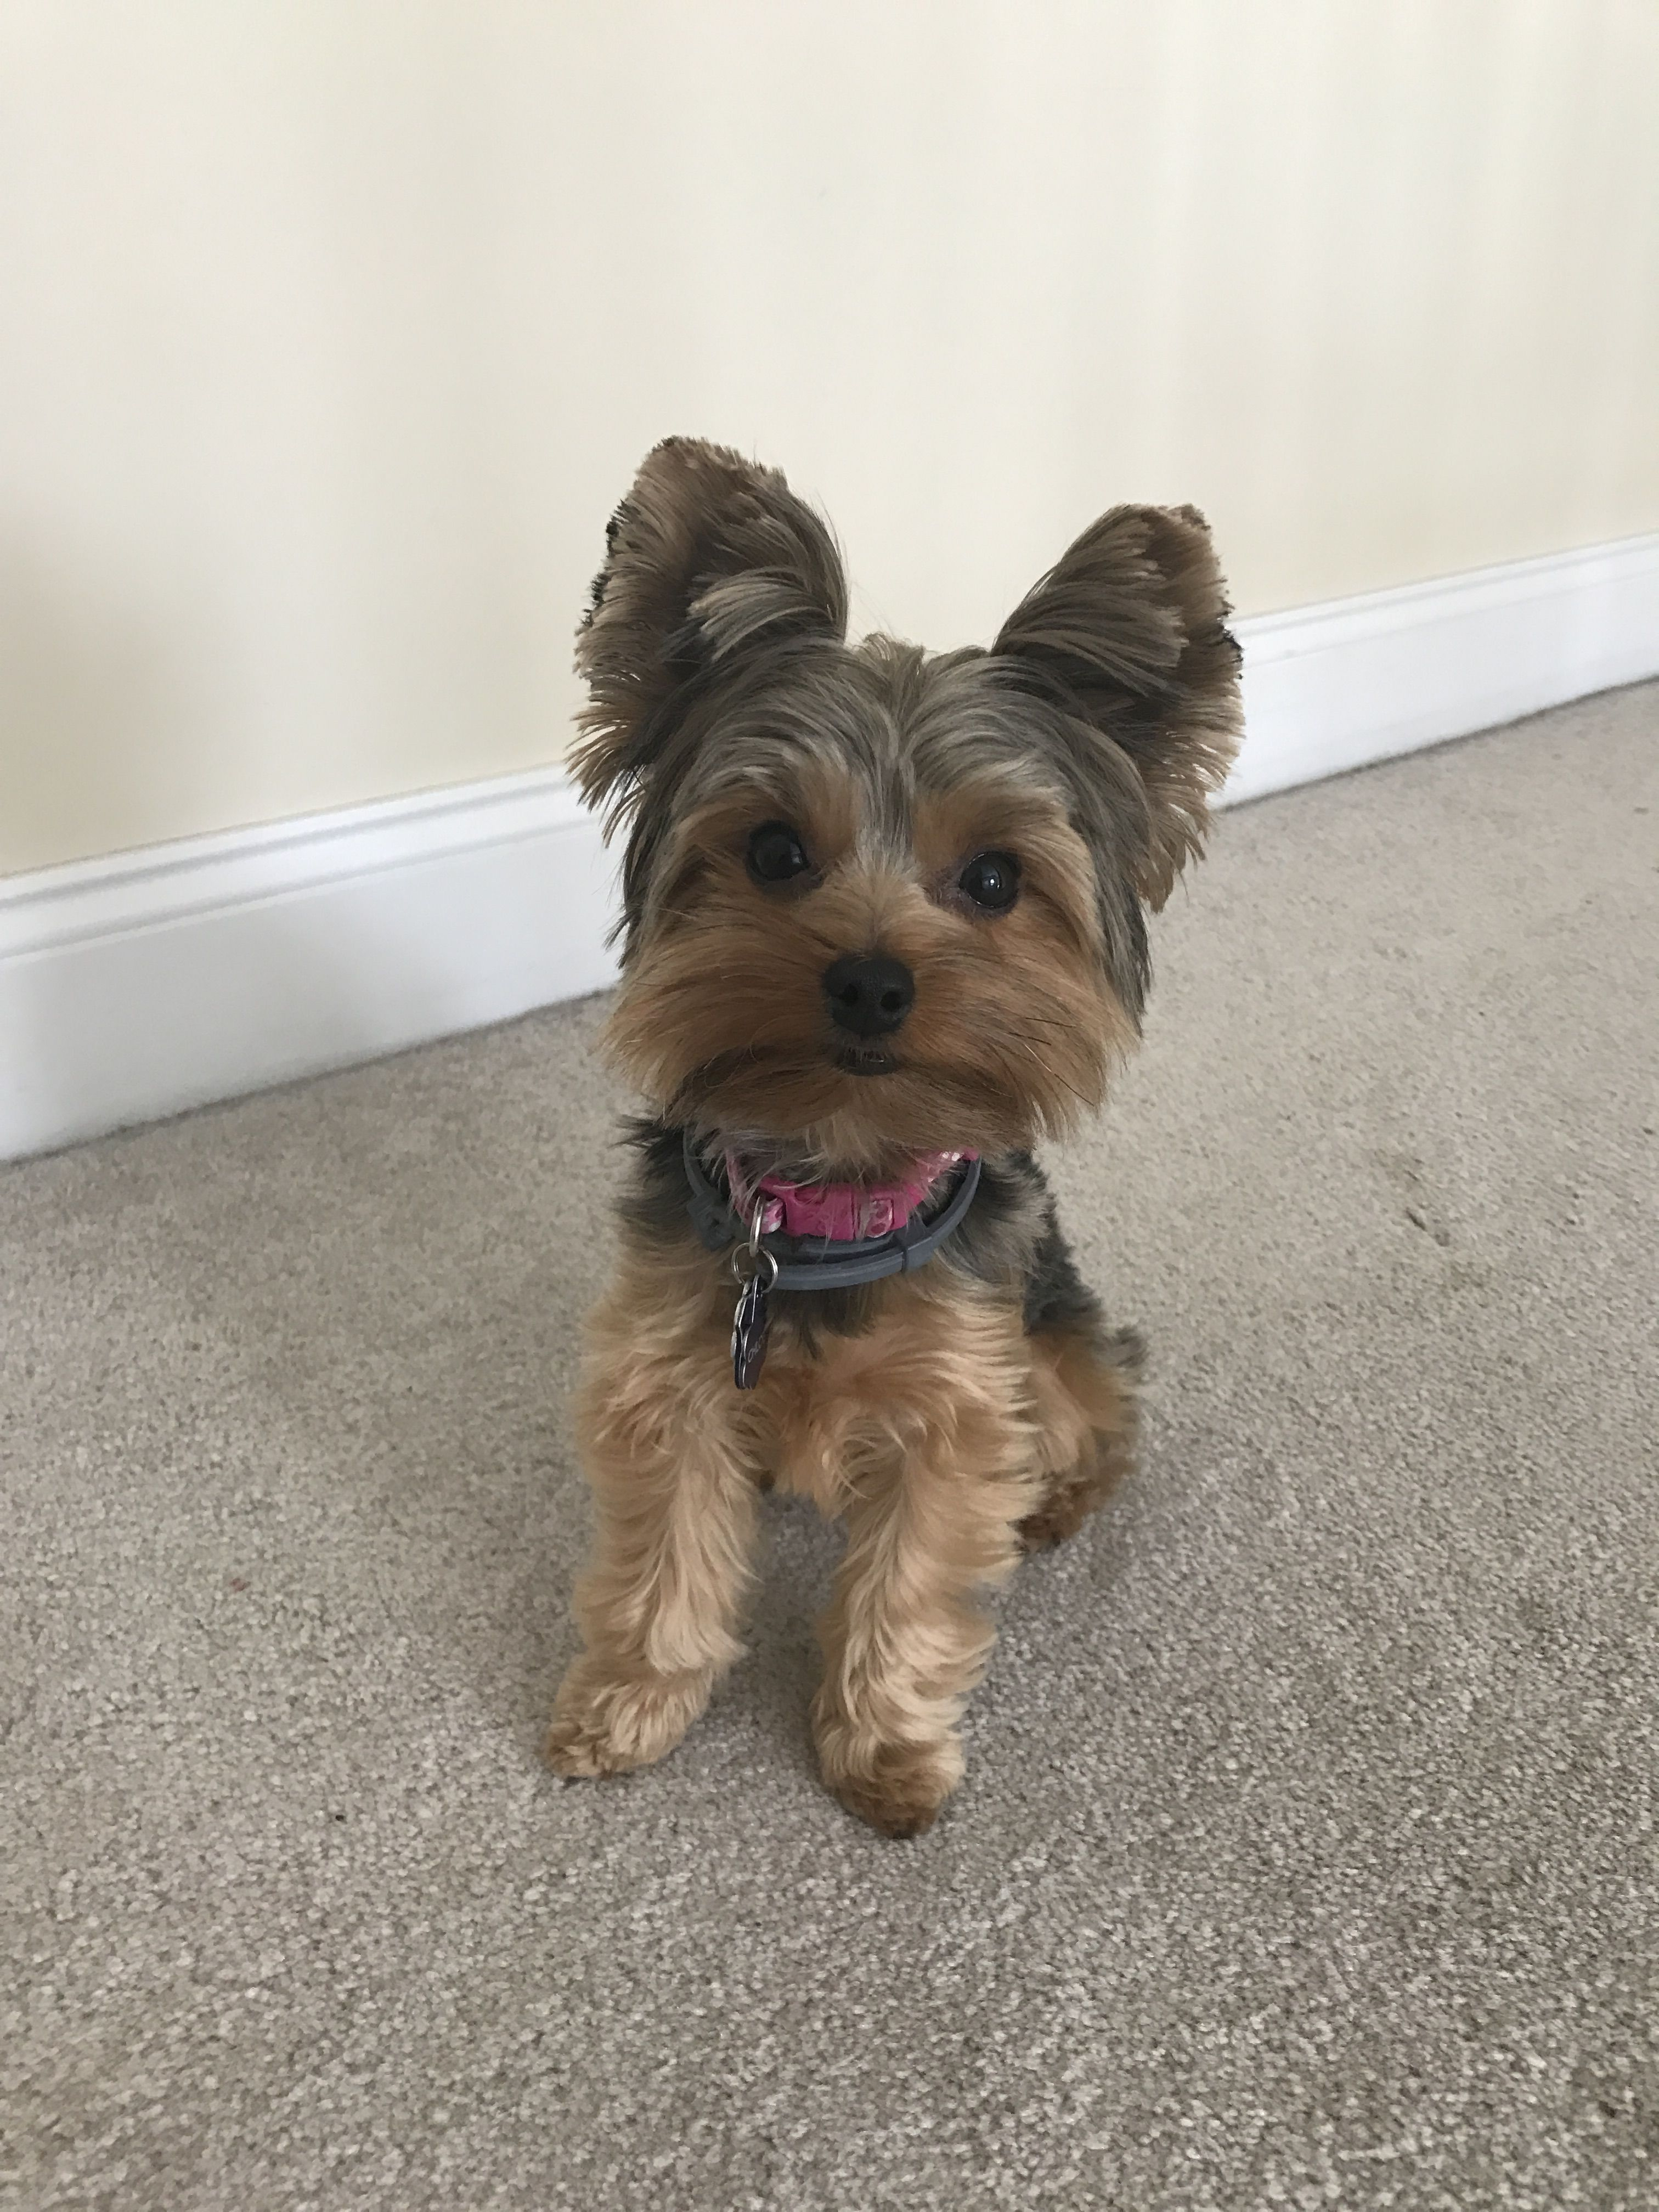 Pin By Sandy Bonfiglio On Teacup Yorkie Yorkie Puppy Haircuts Yorkshire Terrier Cute Dogs